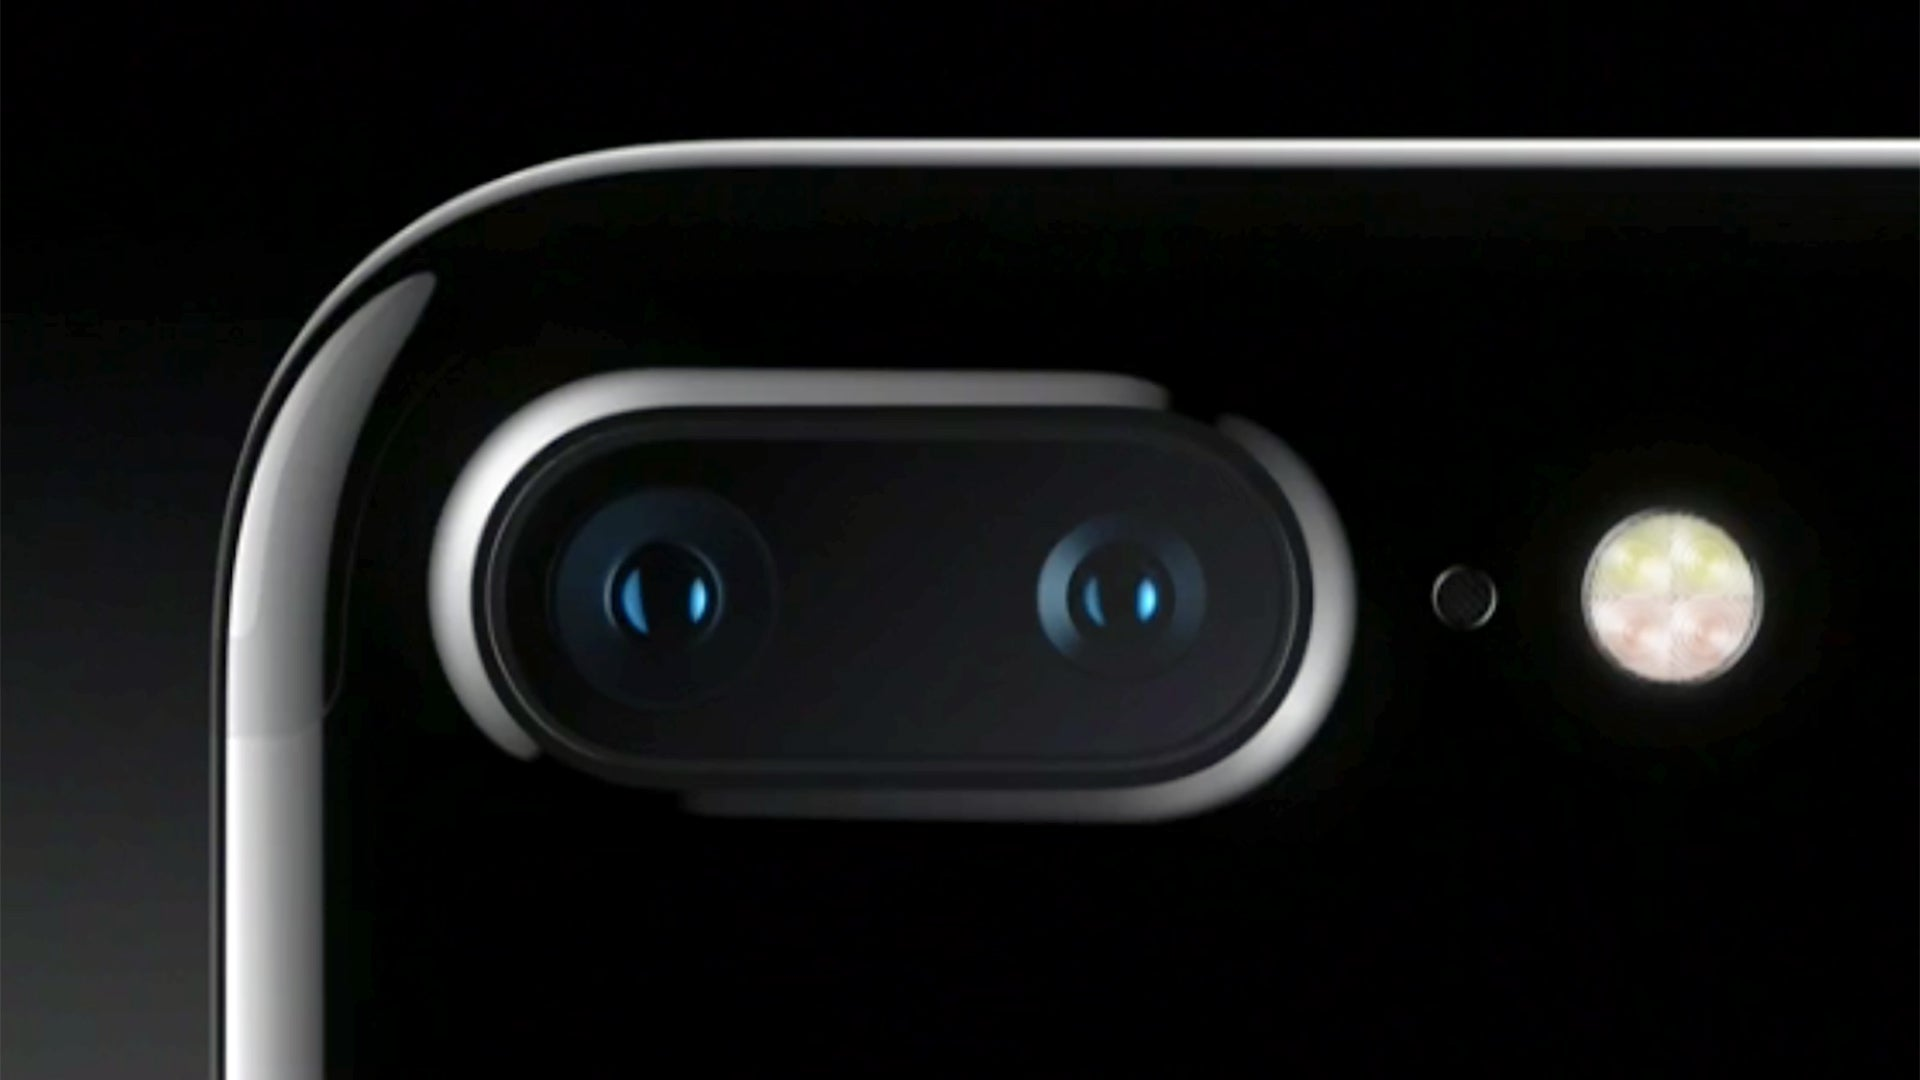 Iphone 7 Plus Camera Specs Revealed After First Photos Hit